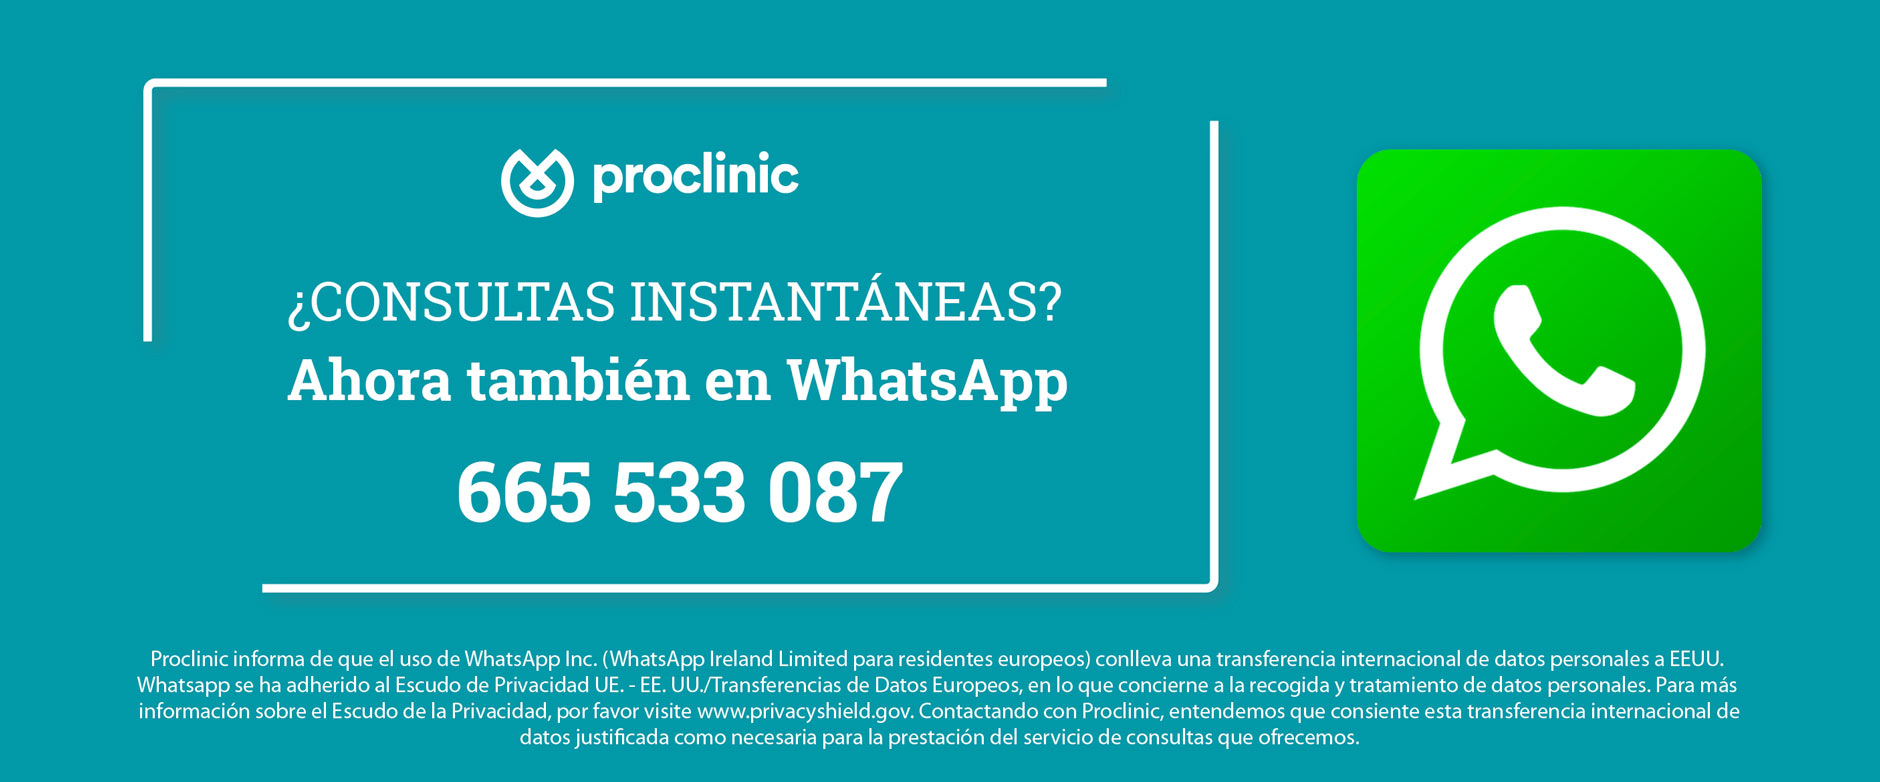 Whatsapp Proclinic